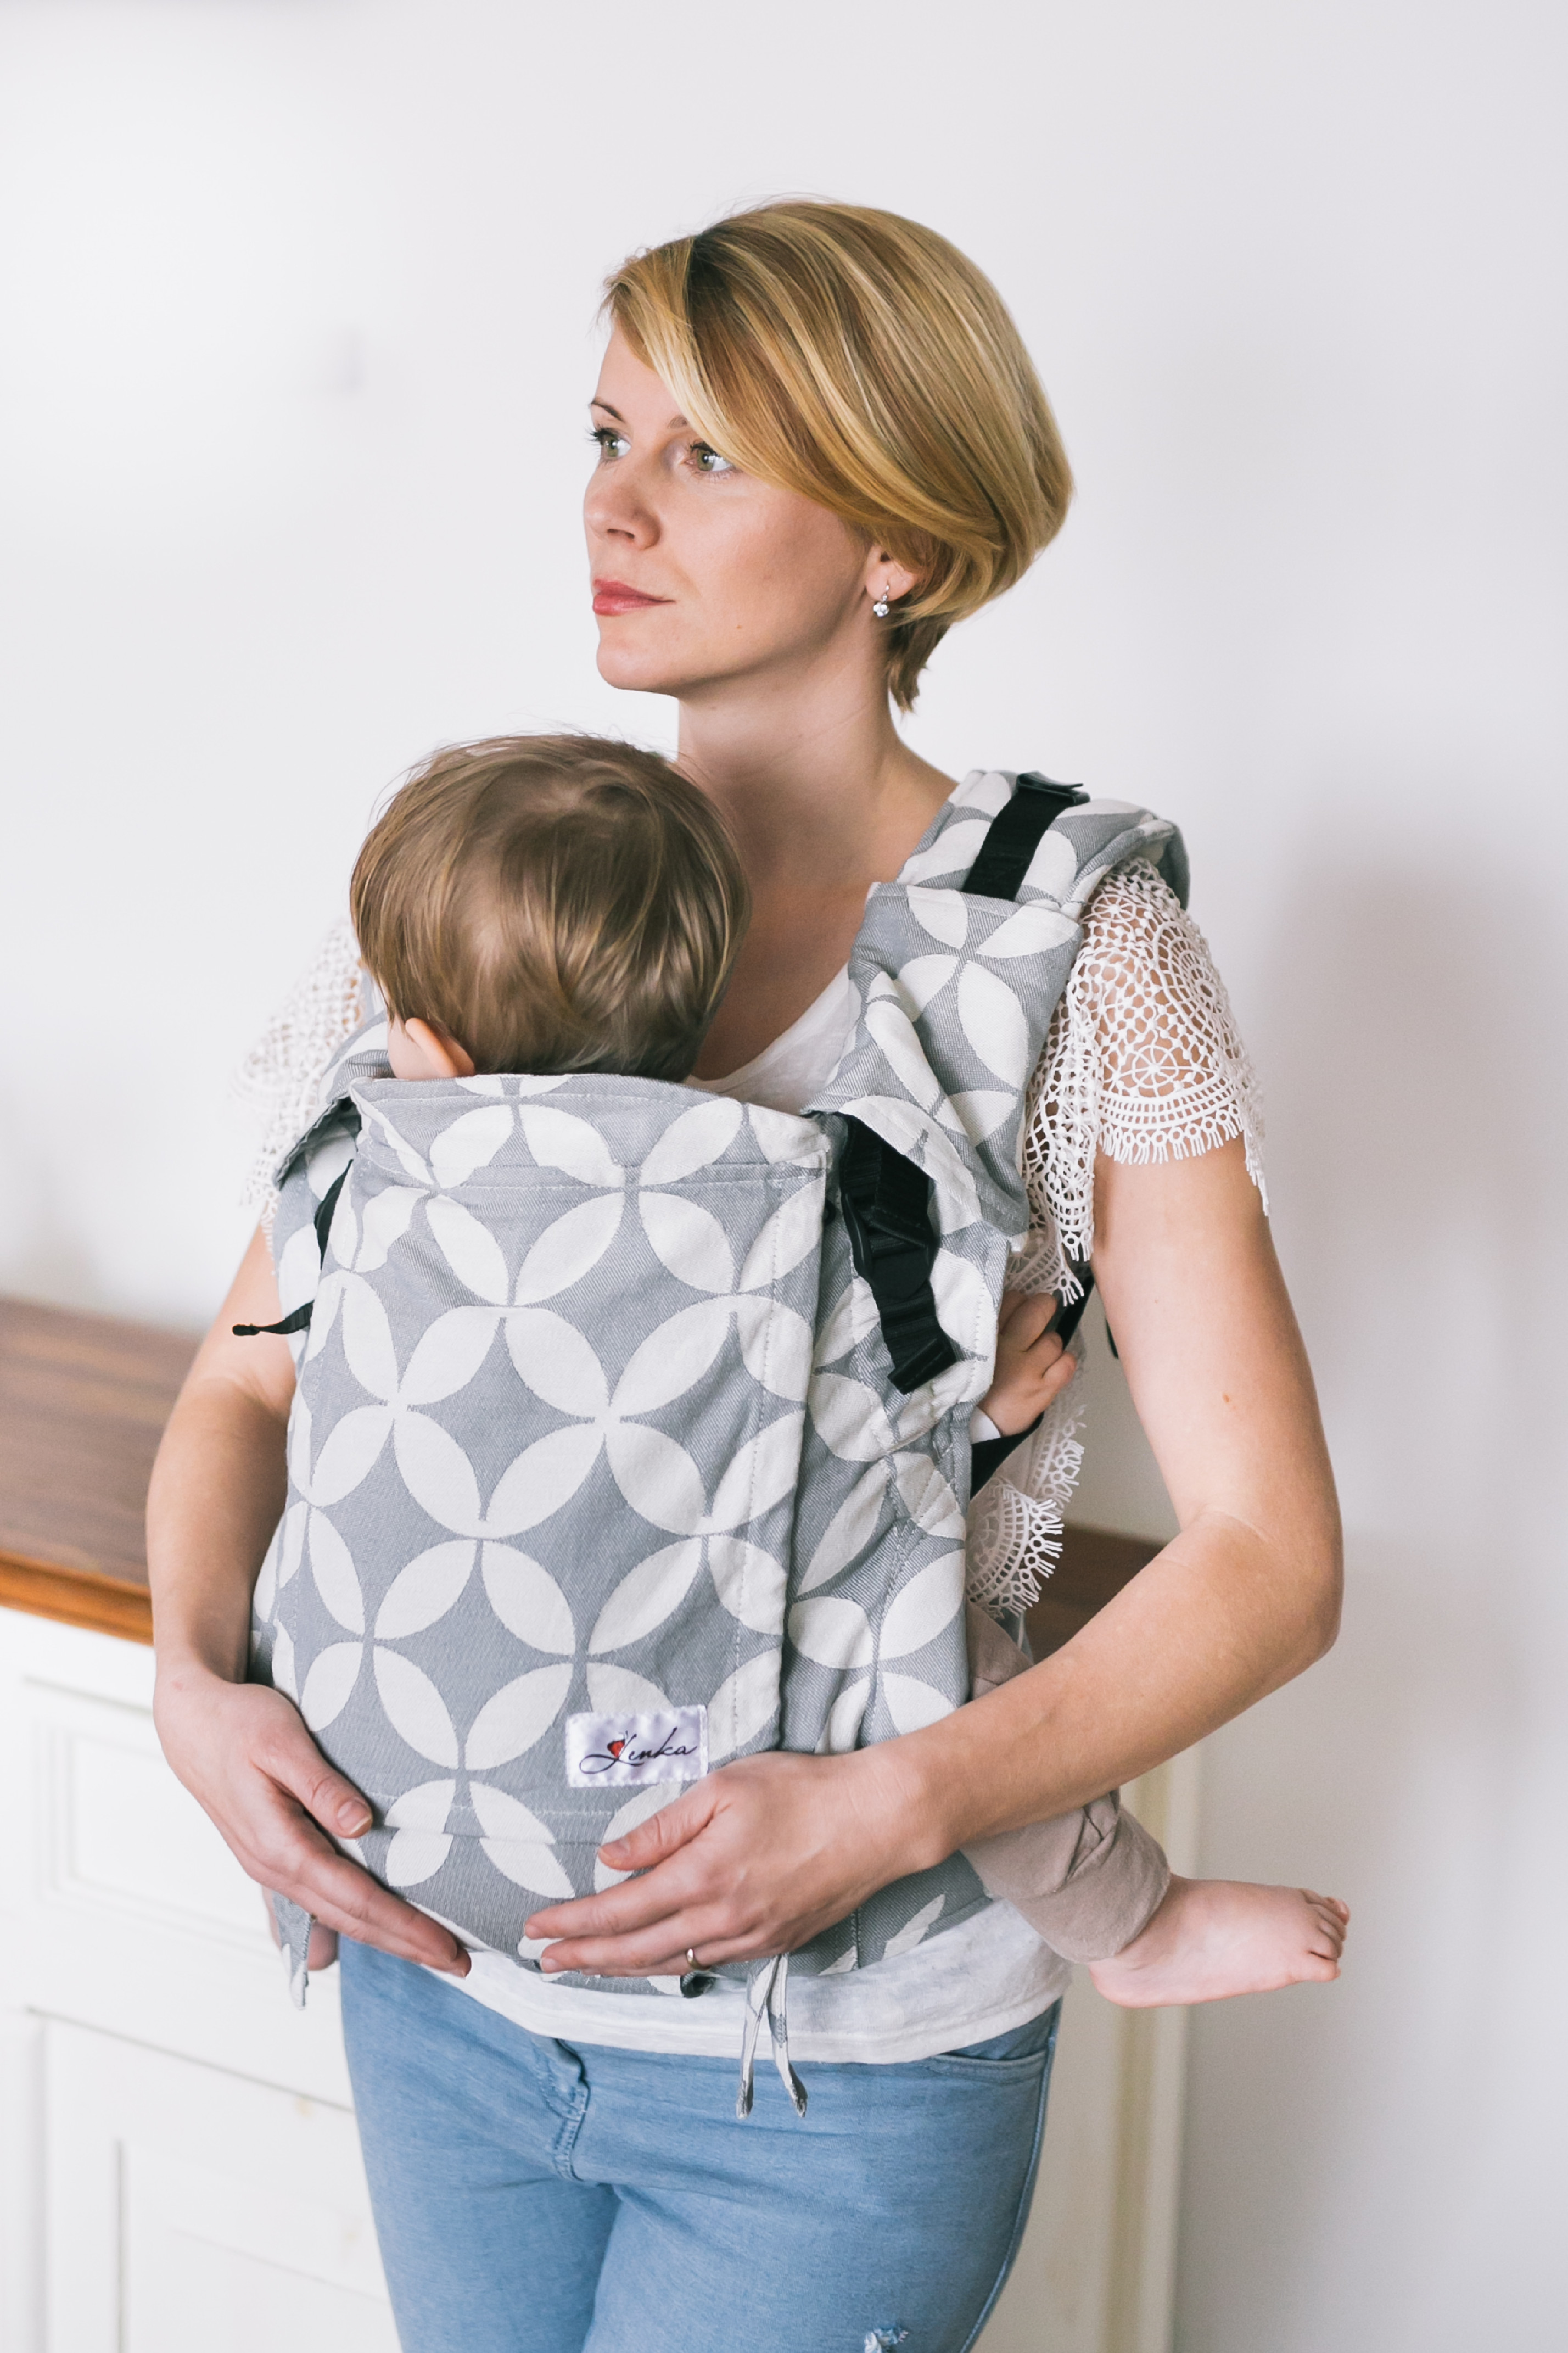 Baby carrier - Be Lenka 4ever Classic - Grey Diamond wide with the possibility of crossing